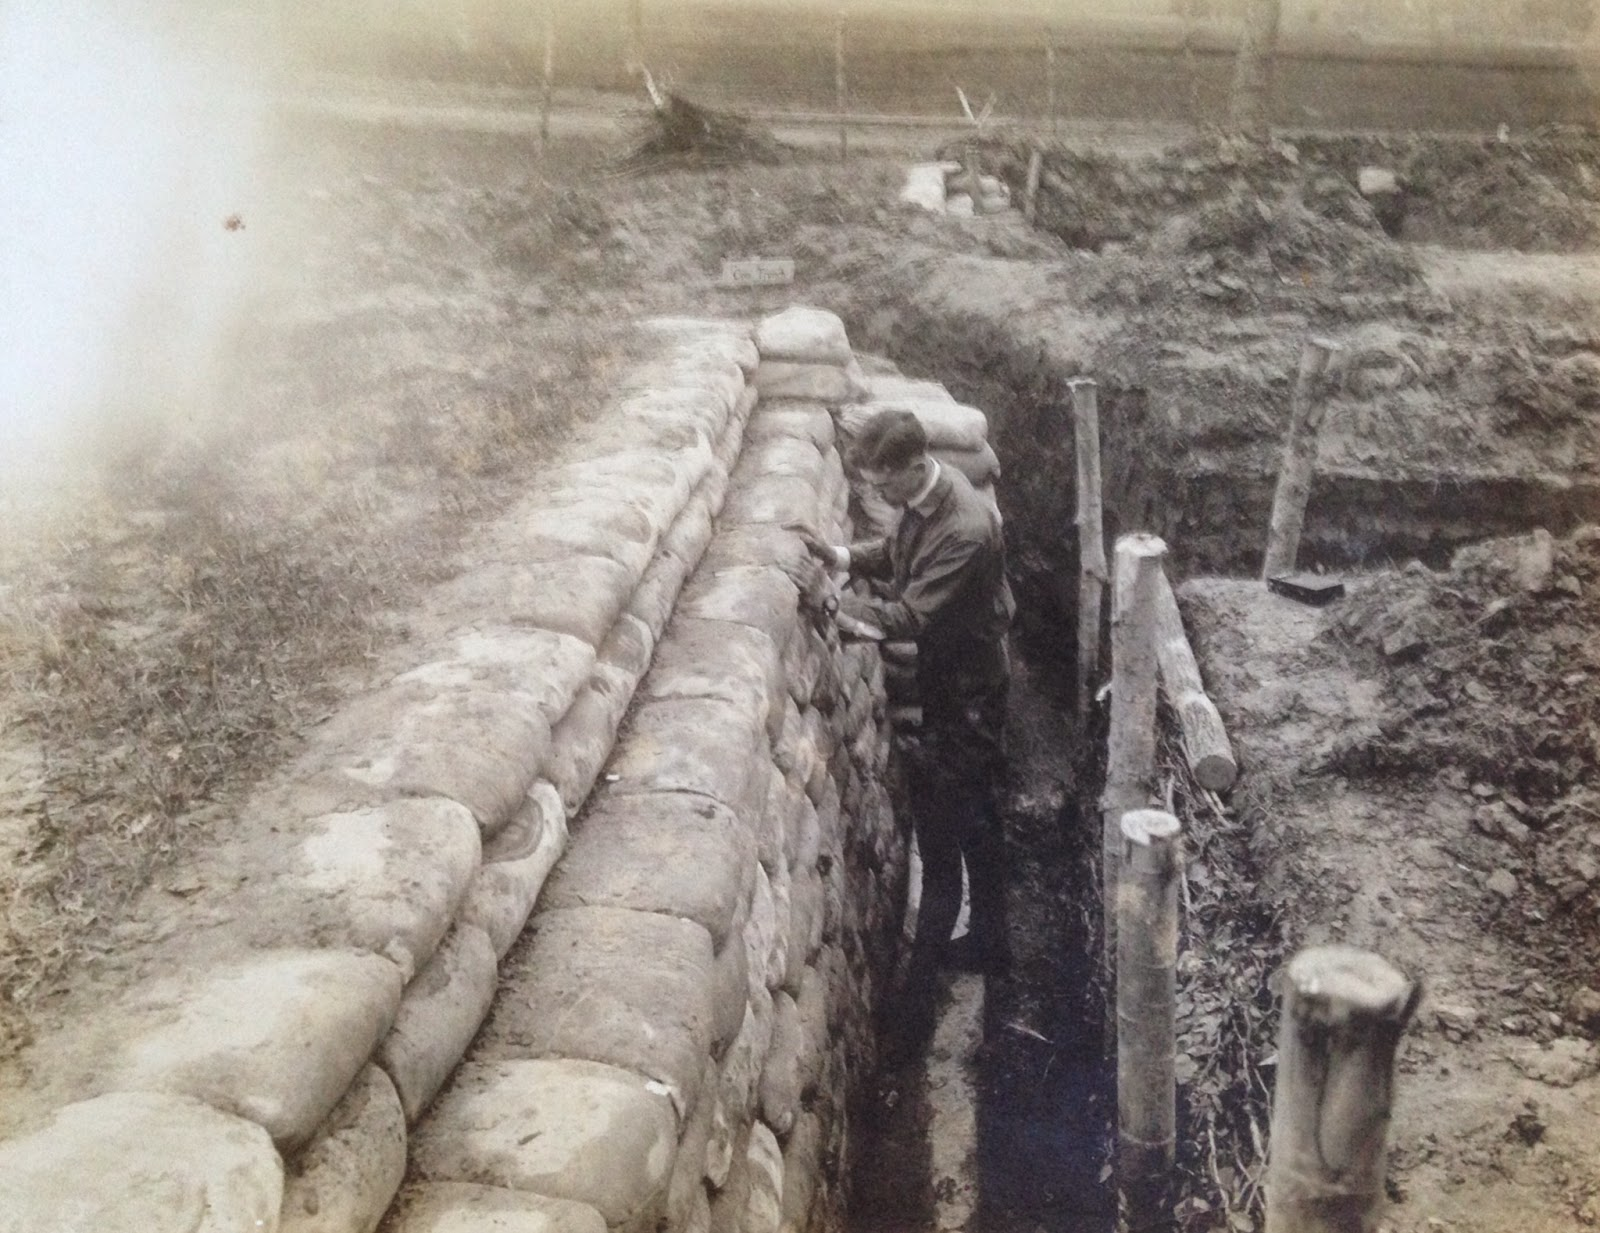 A photograph of a man standing in a training trench.